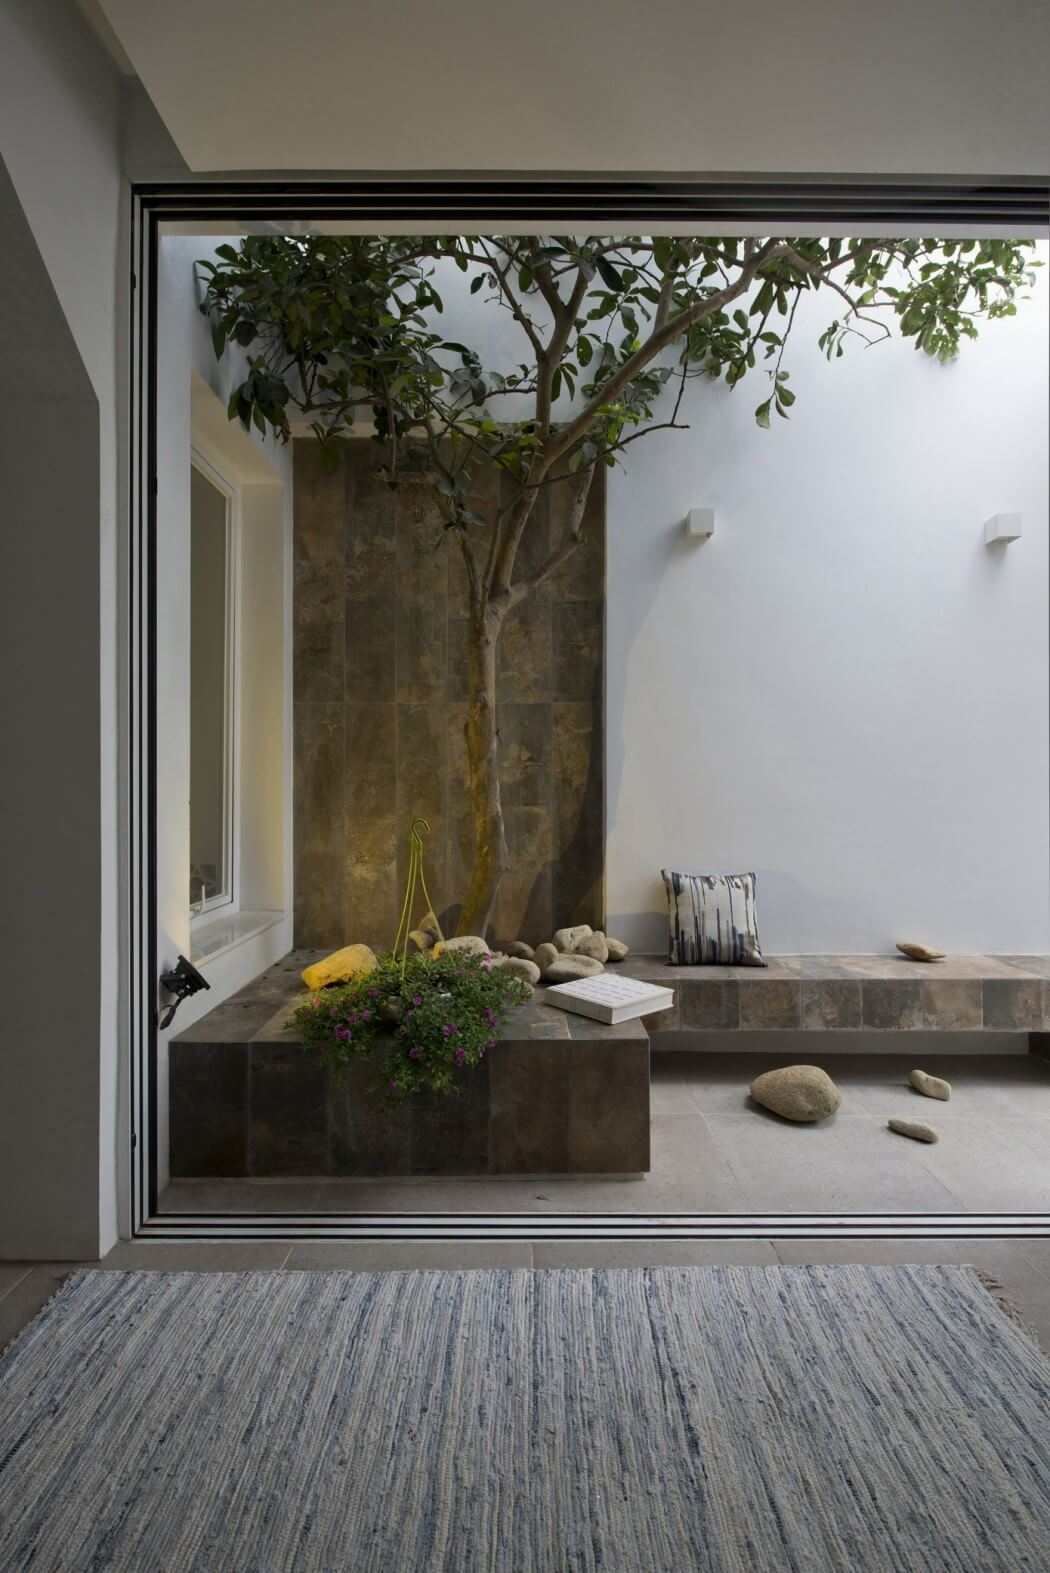 By Landmak Architecture. Photography by Le Anh Duc, Trieu Chien